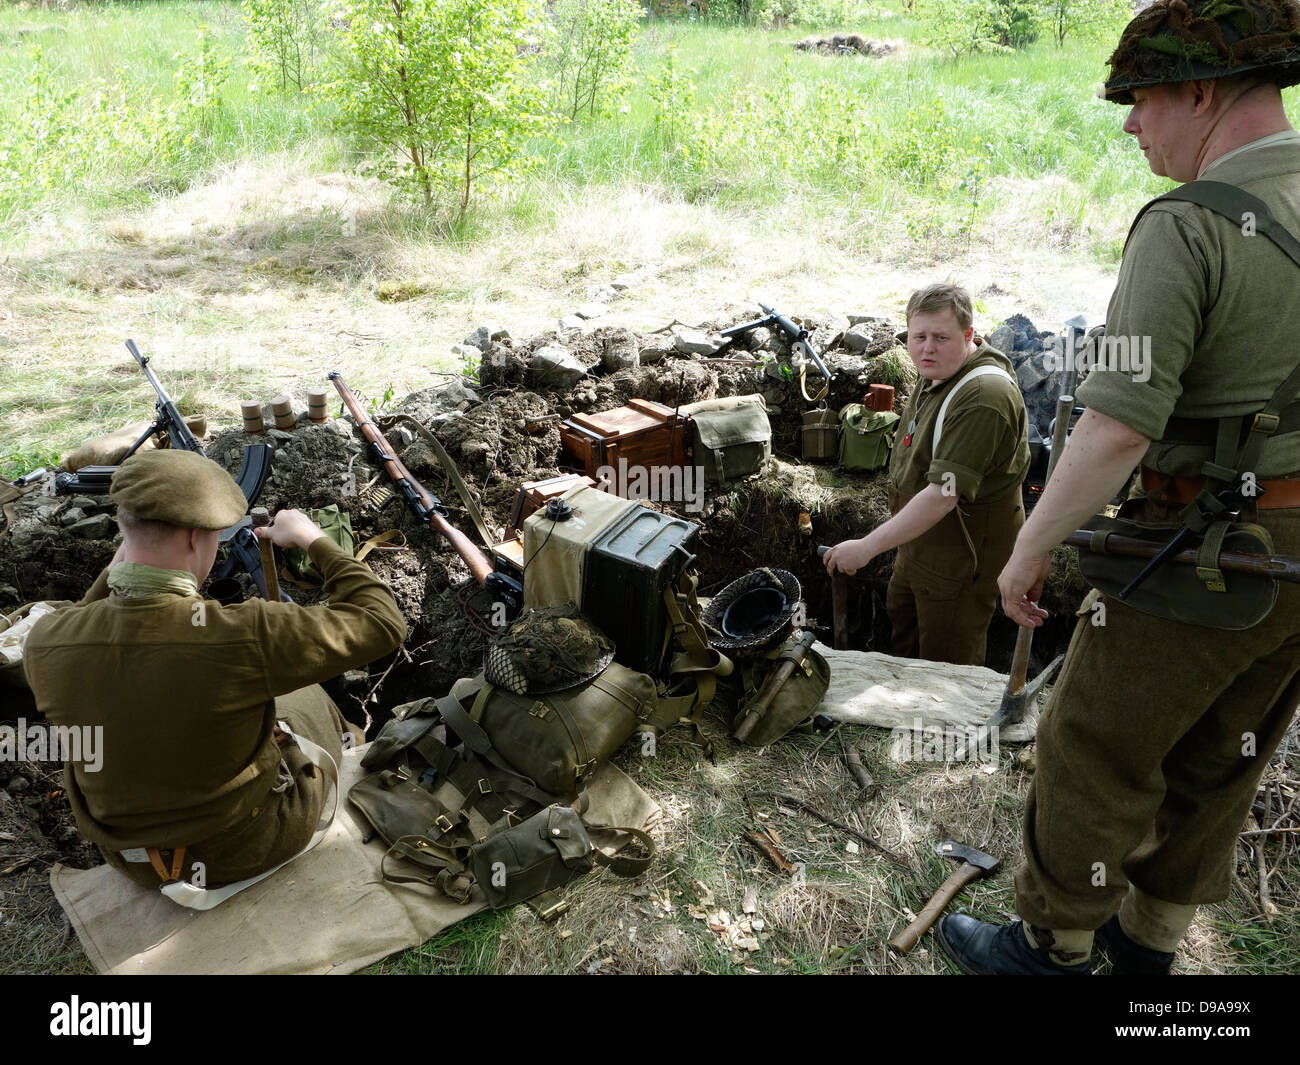 Historical re-enactment of ww2. British soldiers dig the trench. - Stock Image